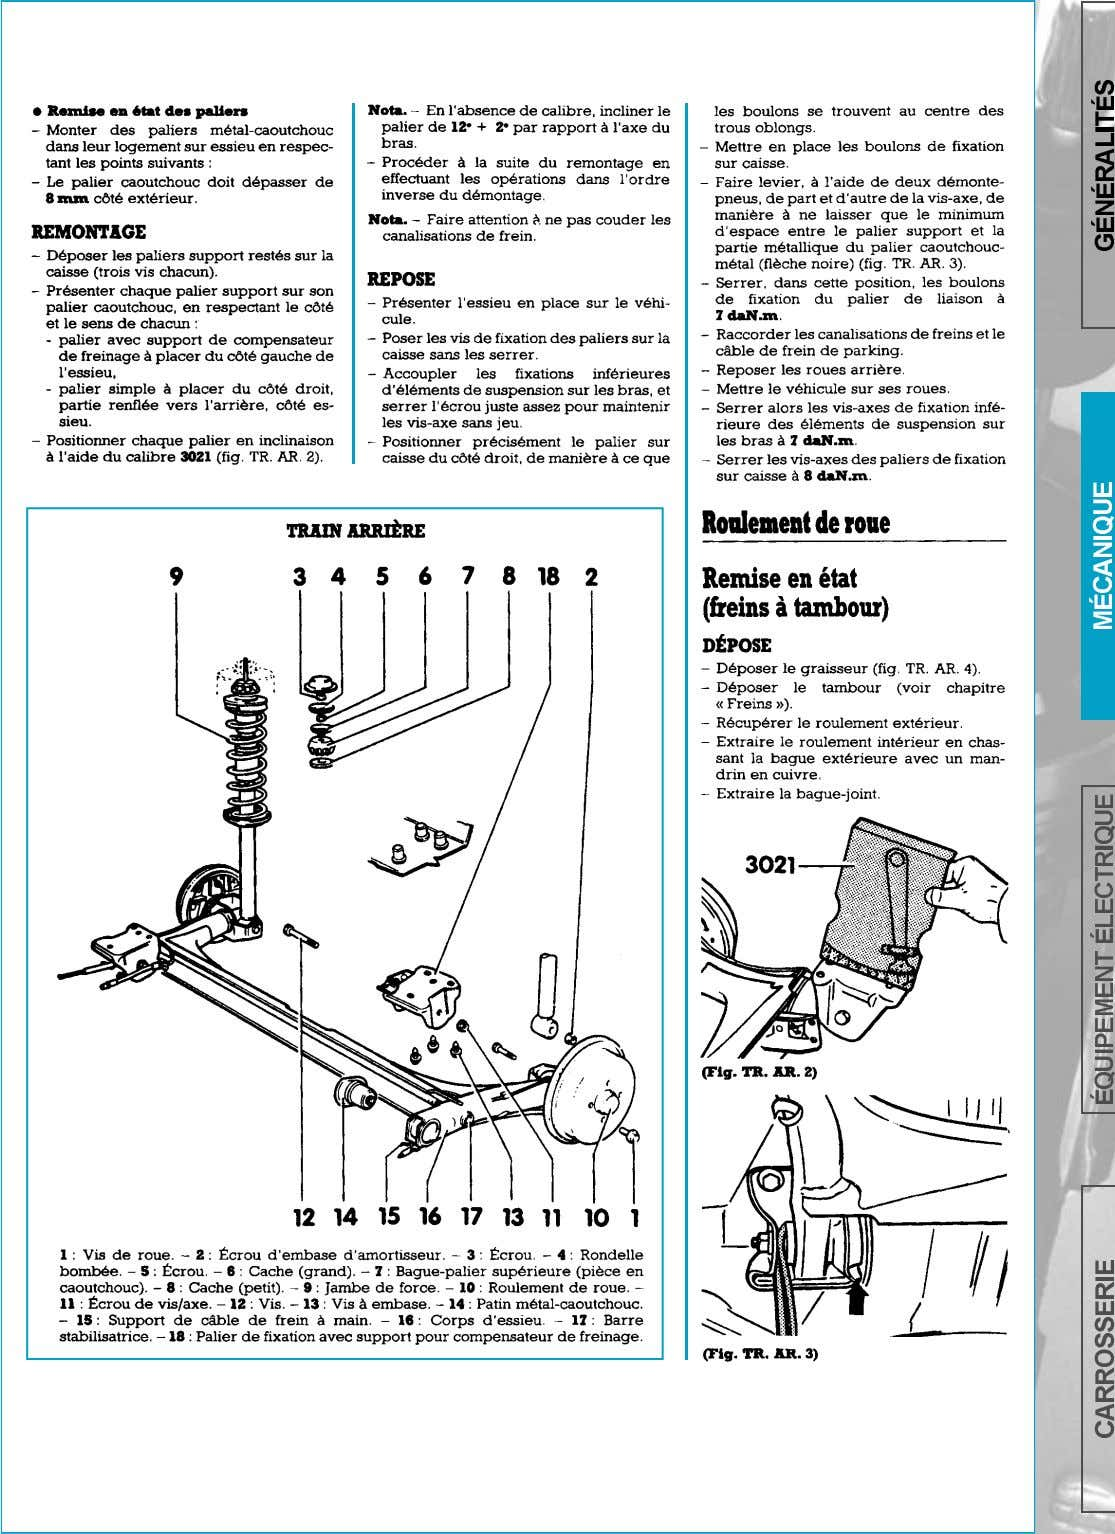 SUSPENSION-TRAIN ARRIERE   page 154